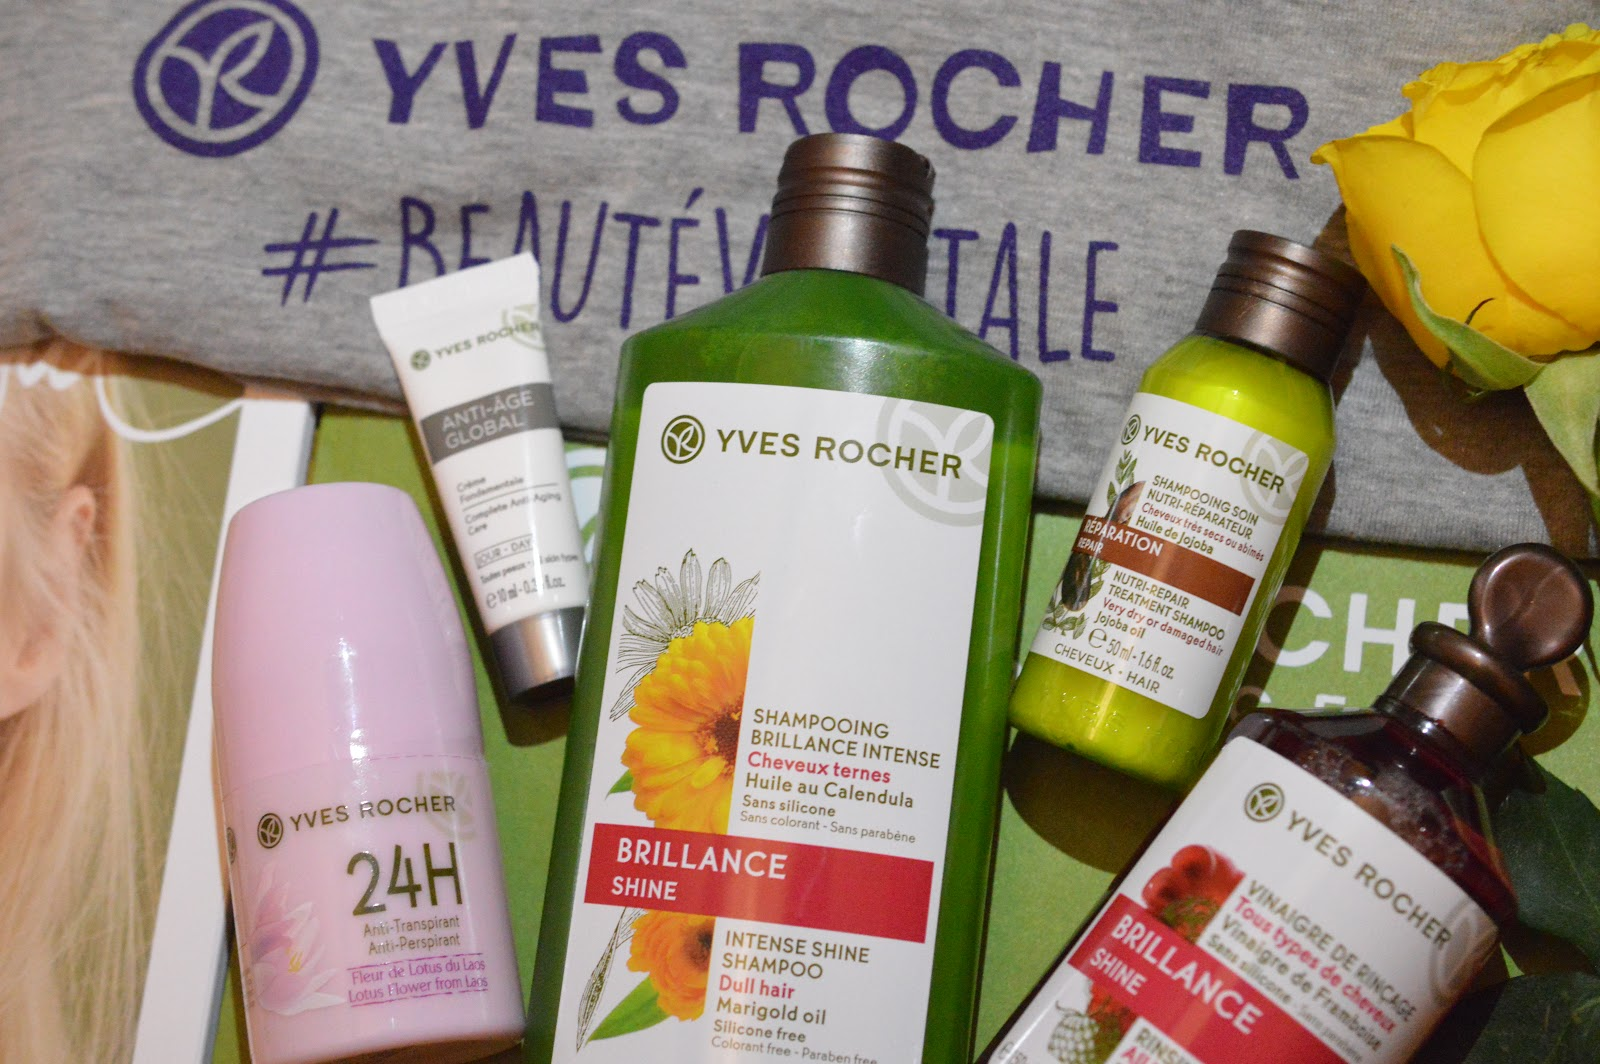 Best Yves Rocher products